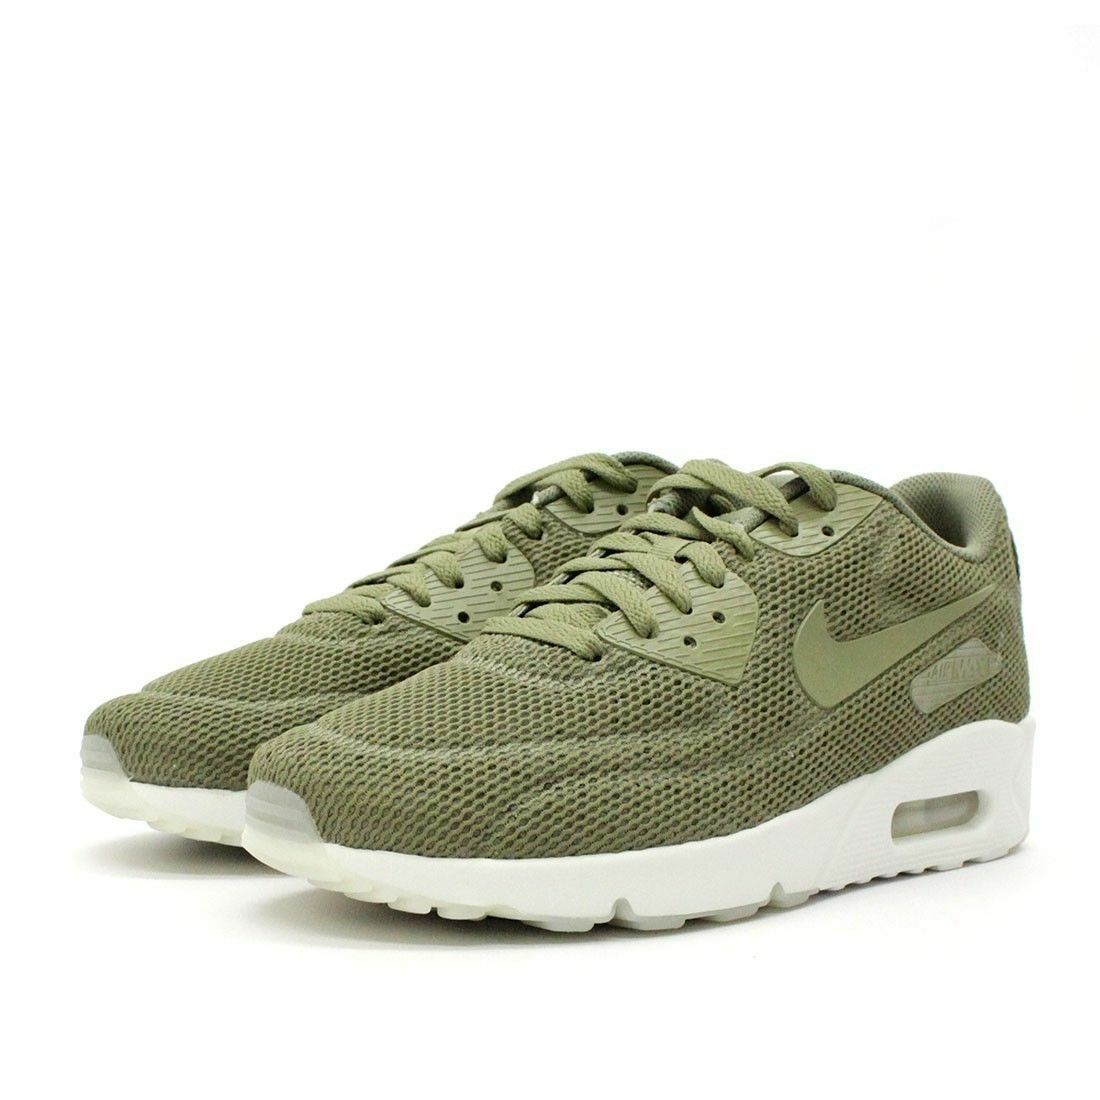 NIKE AIR MAX 90 ULTRA 2.0 BR MENS RUNNING SHOES Price reduction Cheap and beautiful fashion